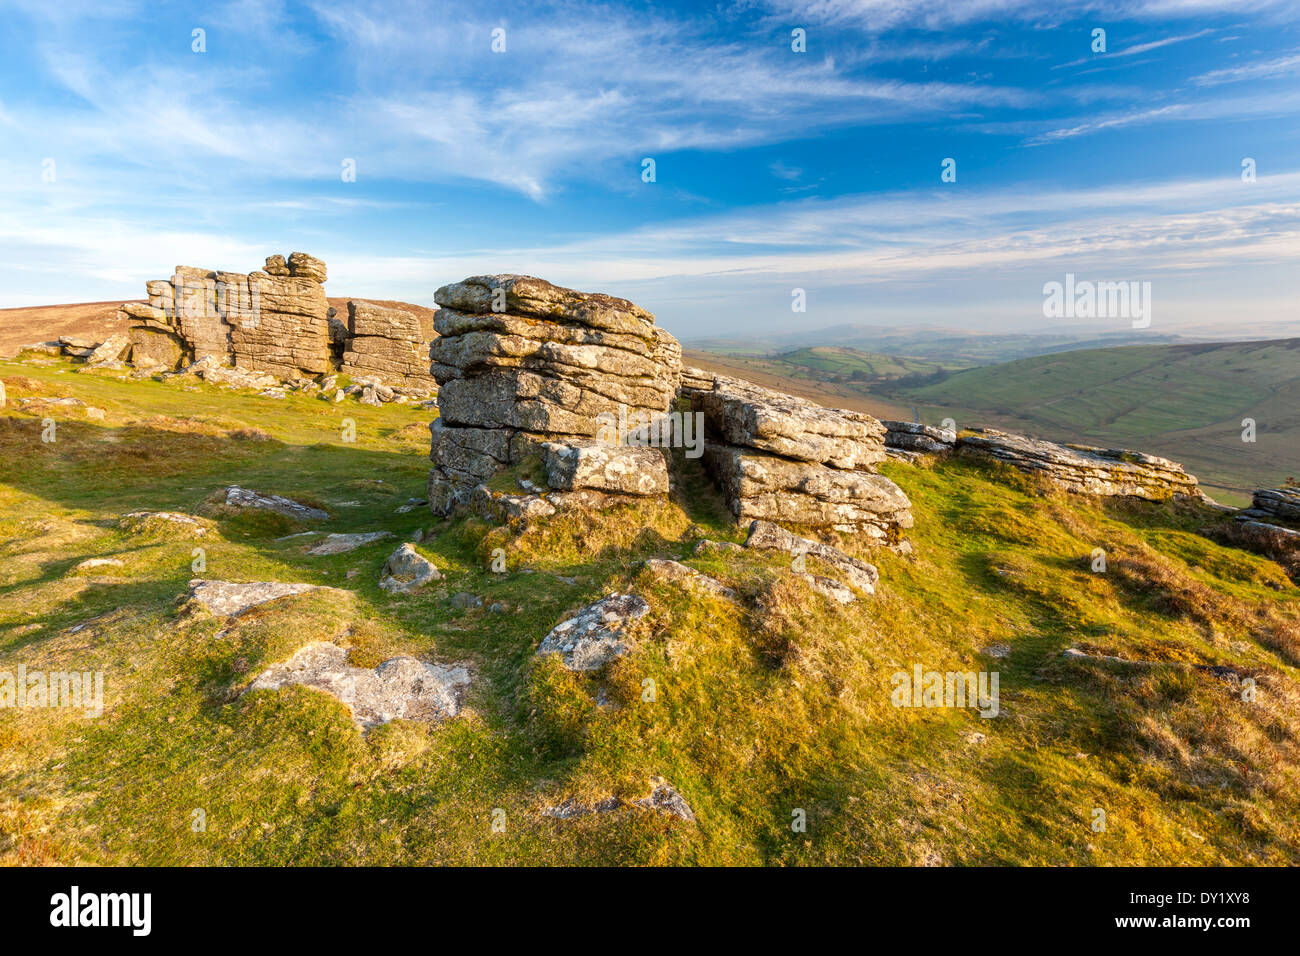 Hookney Tor, Dartmoor National Park, North Bovey, West Devon, England, UK, Europe. - Stock Image